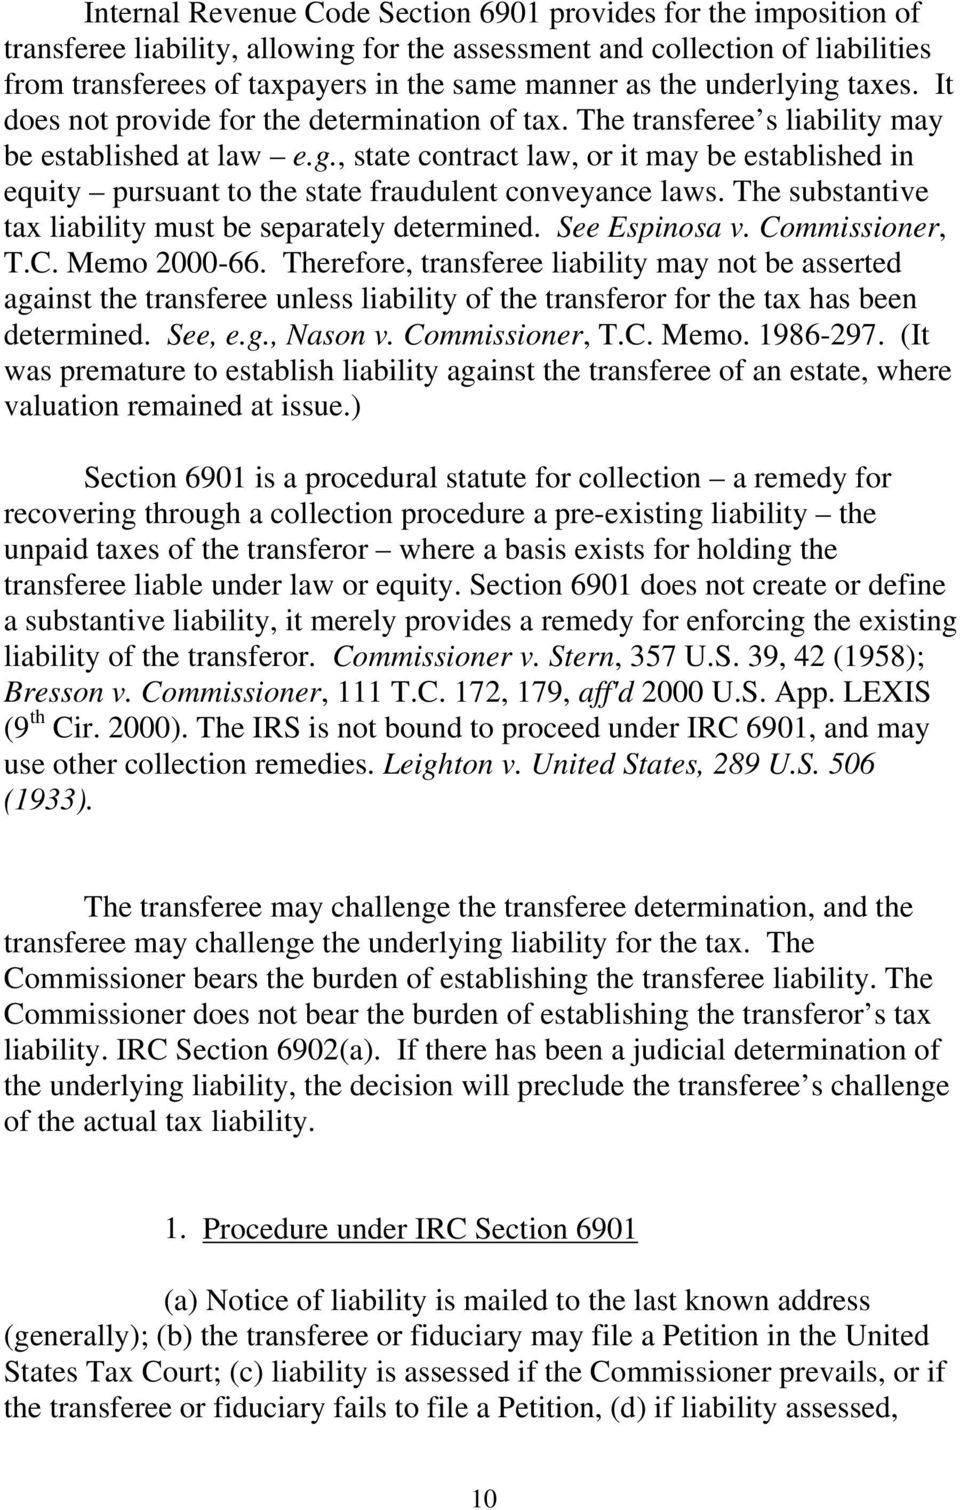 The substantive tax liability must be separately determined. See Espinosa v. Commissioner, T.C. Memo 2000-66.